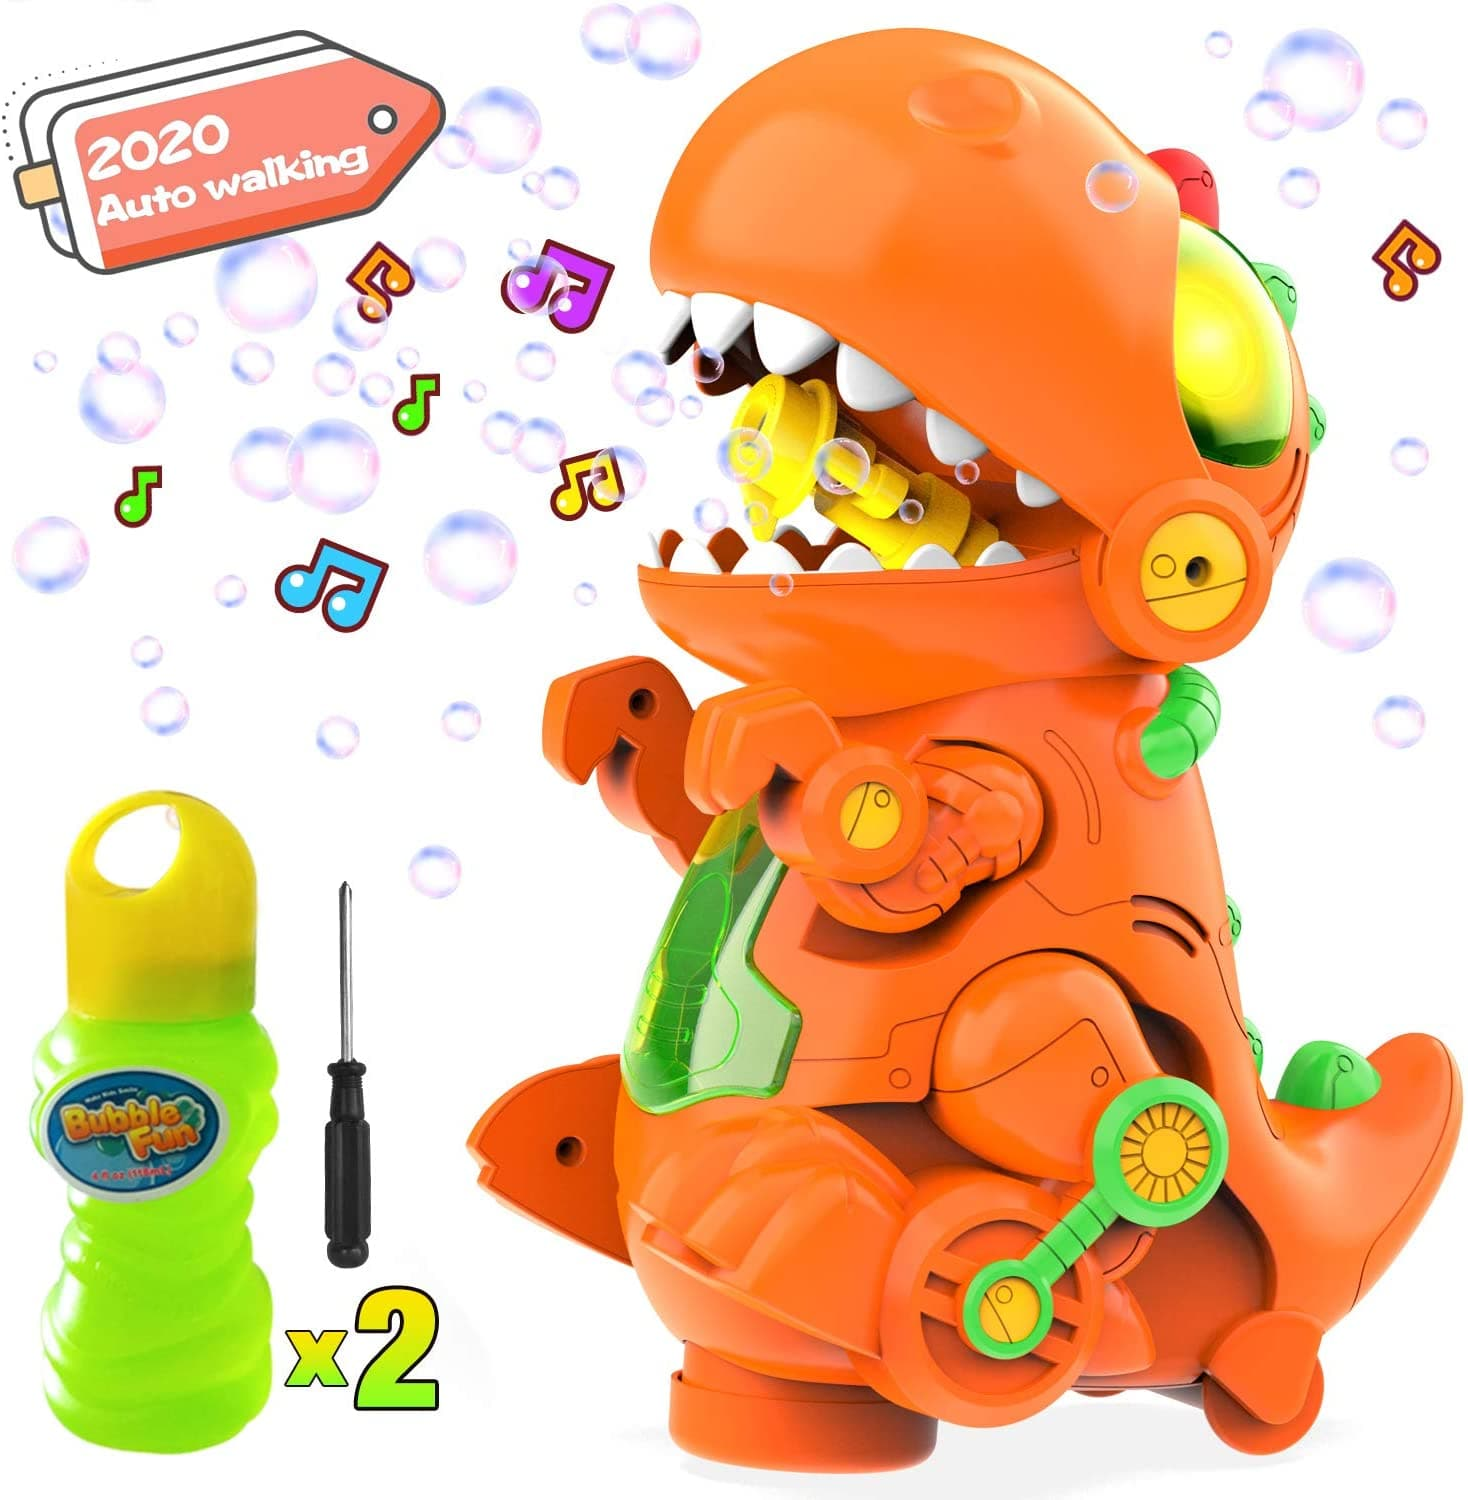 WisToyz Dinosaur Bubble Machine,Music and LED Lights,Auto bubble blower